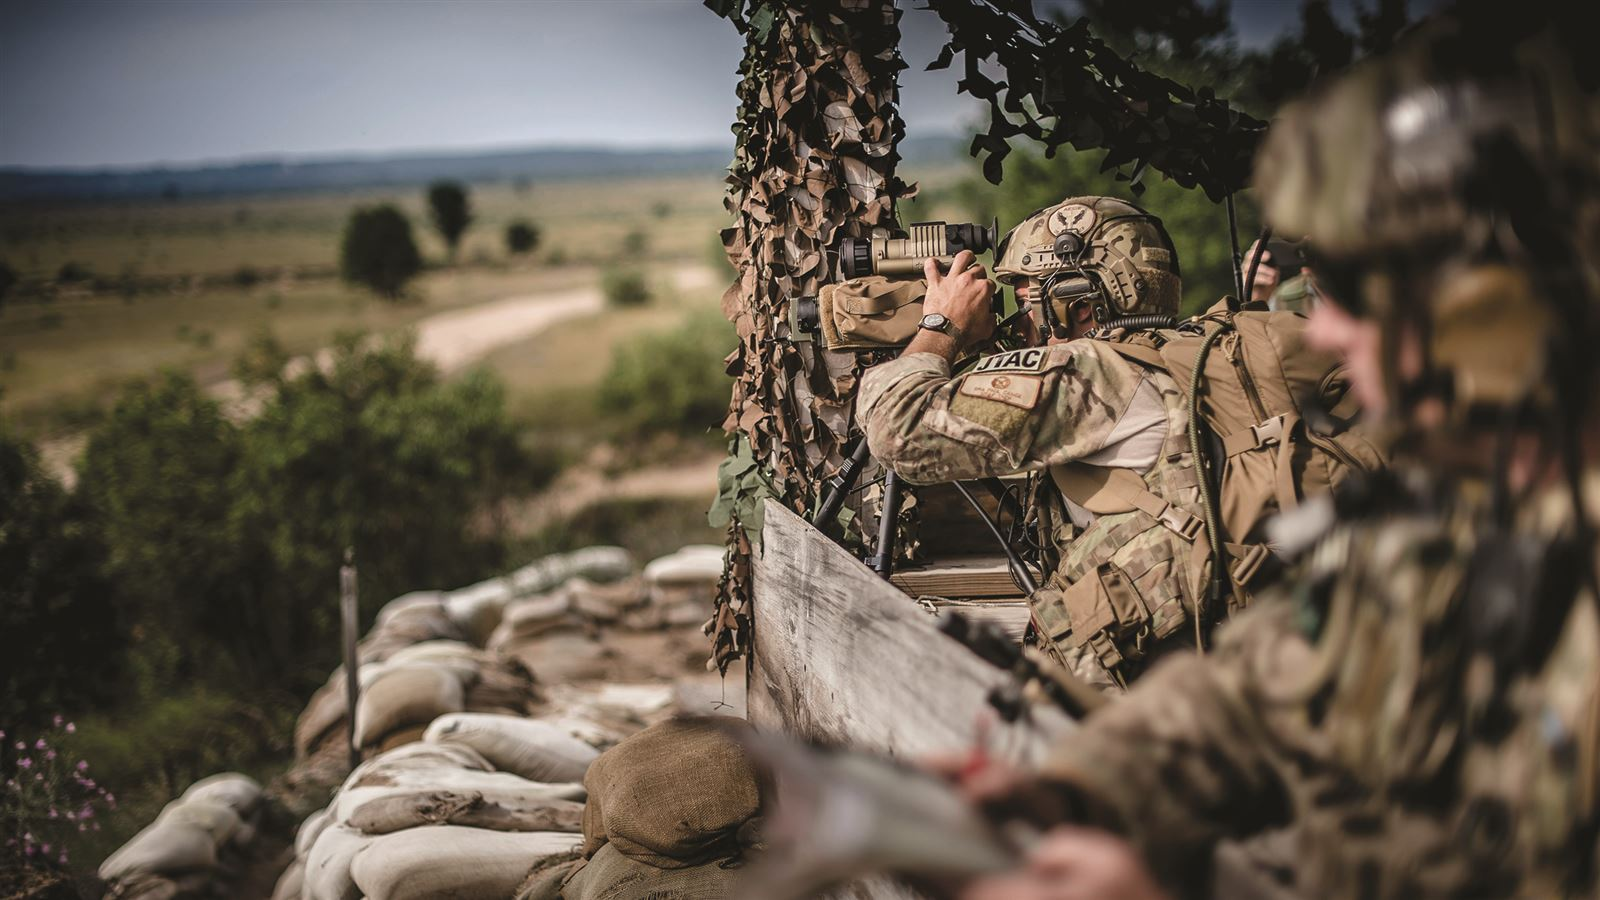 Battlefield Airmen incentive pay to be based on skill versus duty